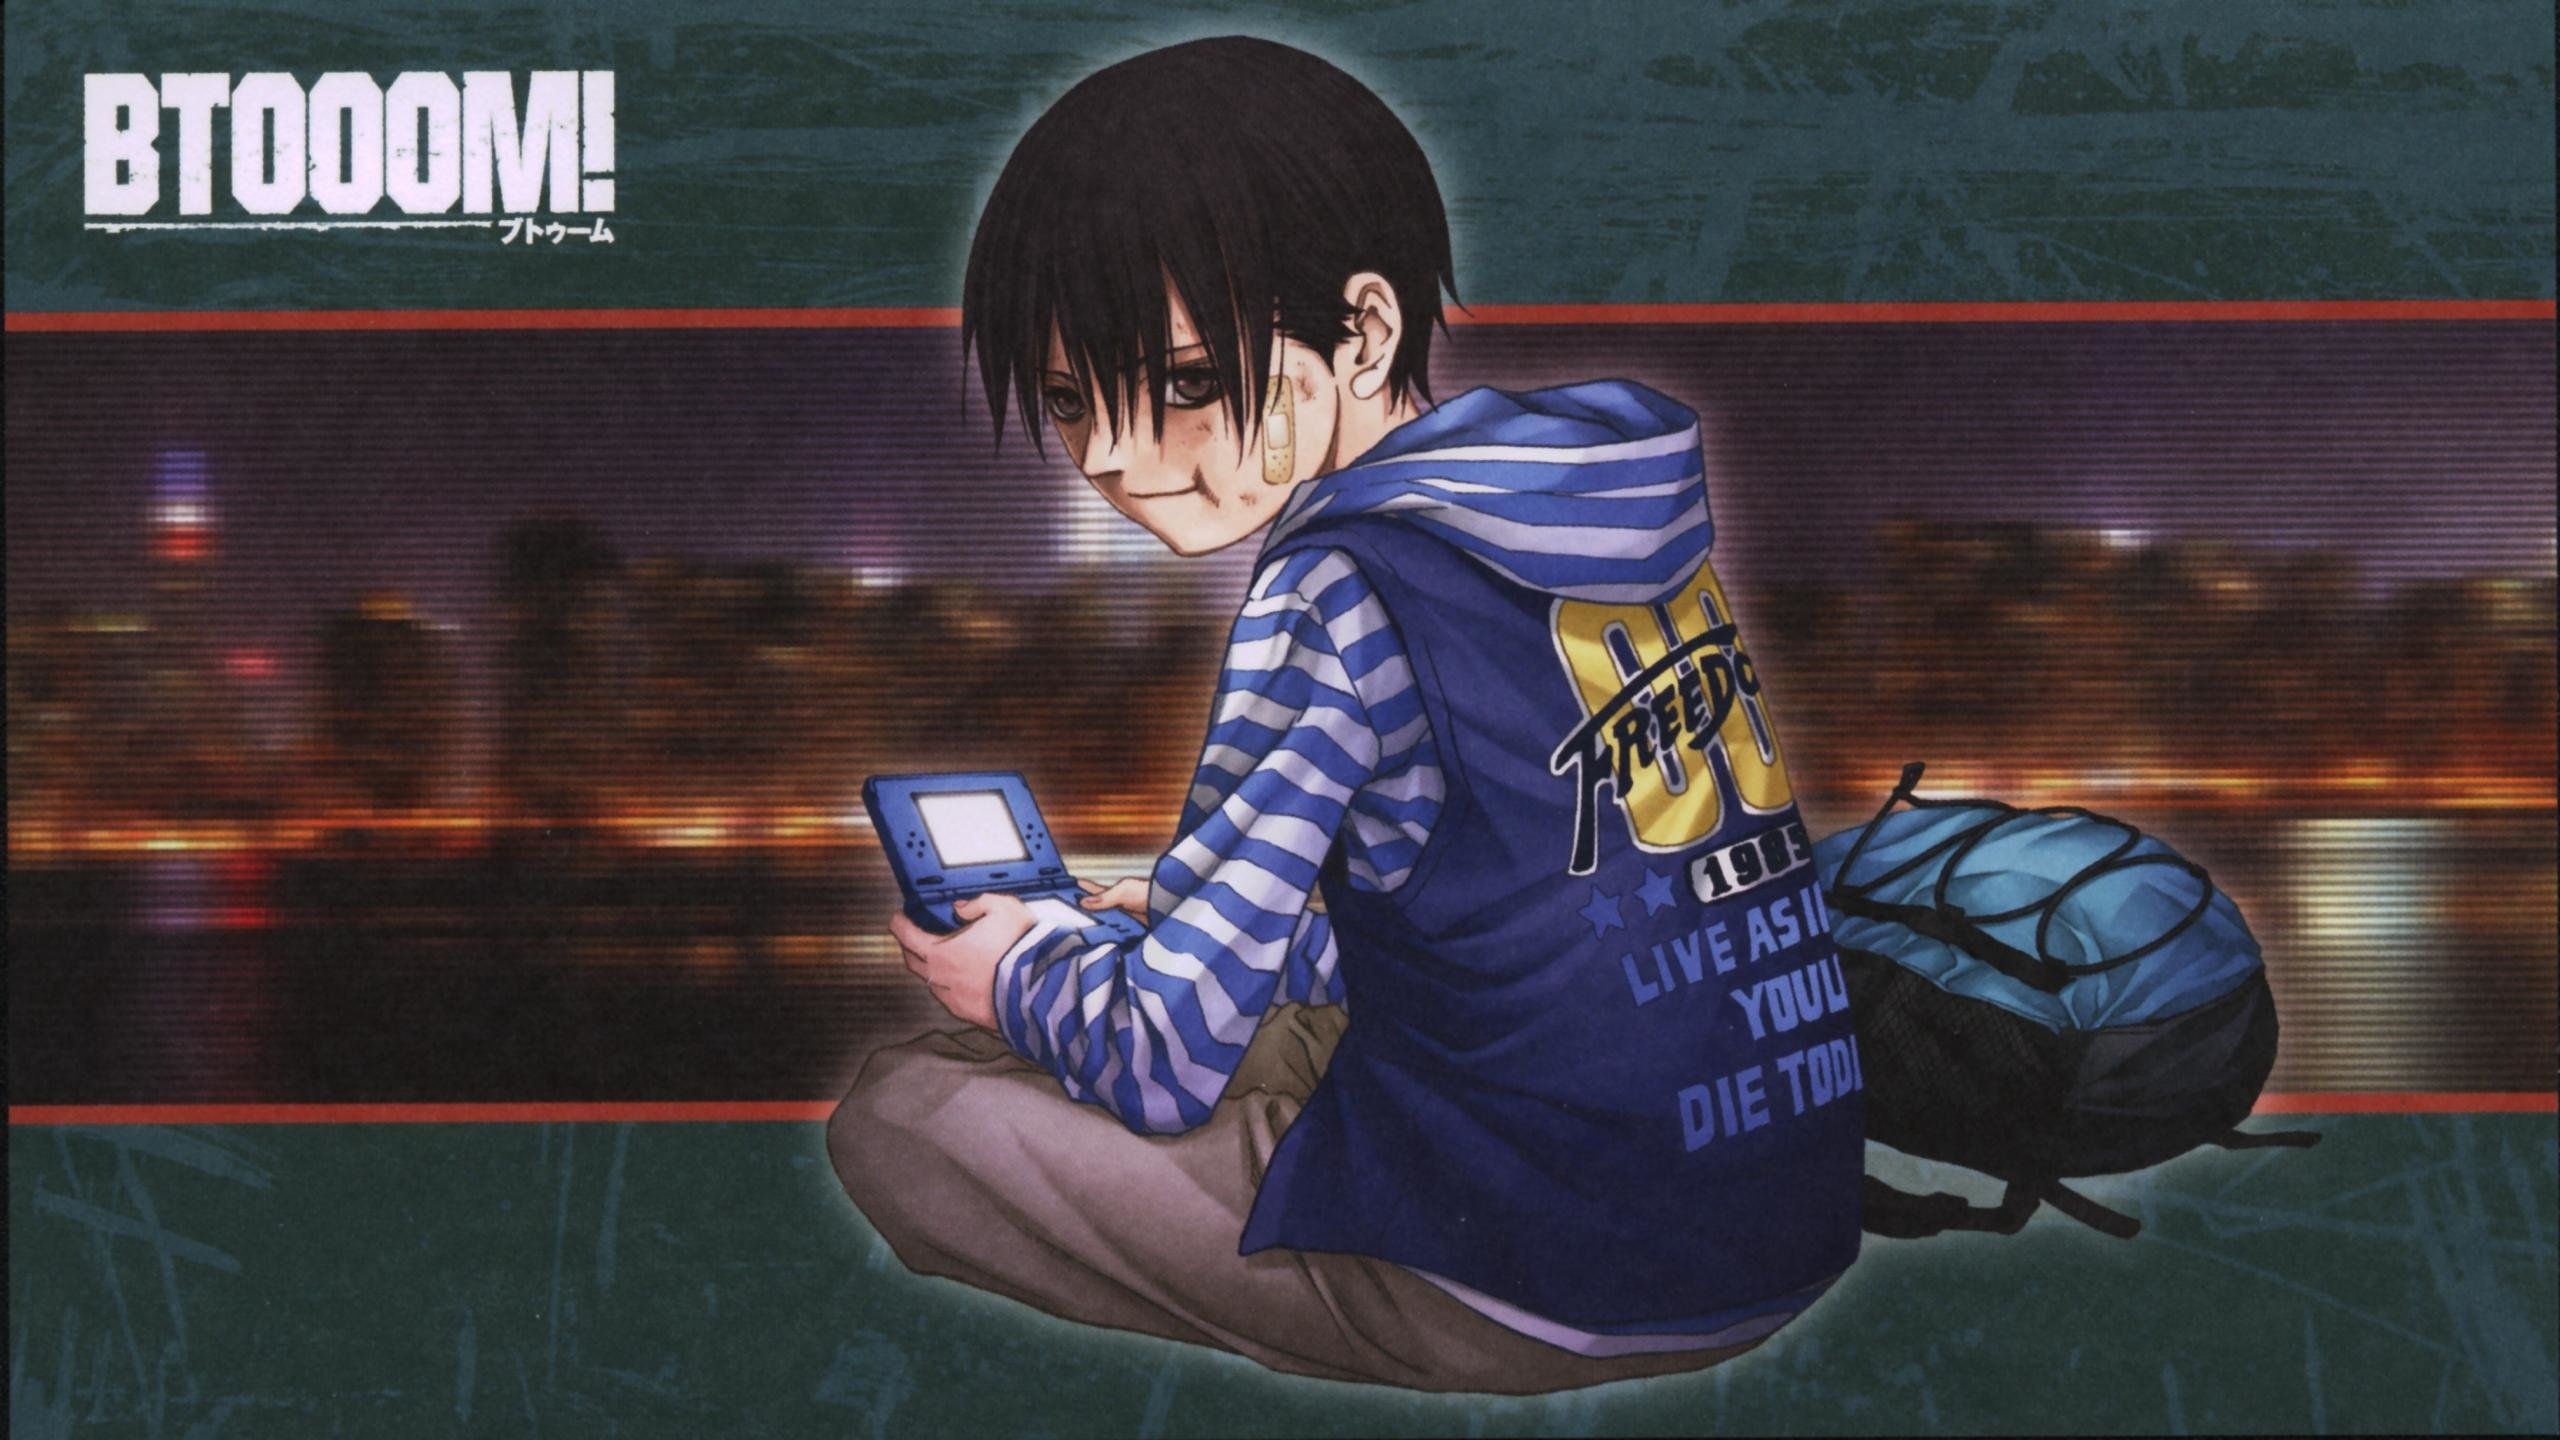 Awesome Btooom! free wallpaper ID:358271 for hd 2560x1440 desktop